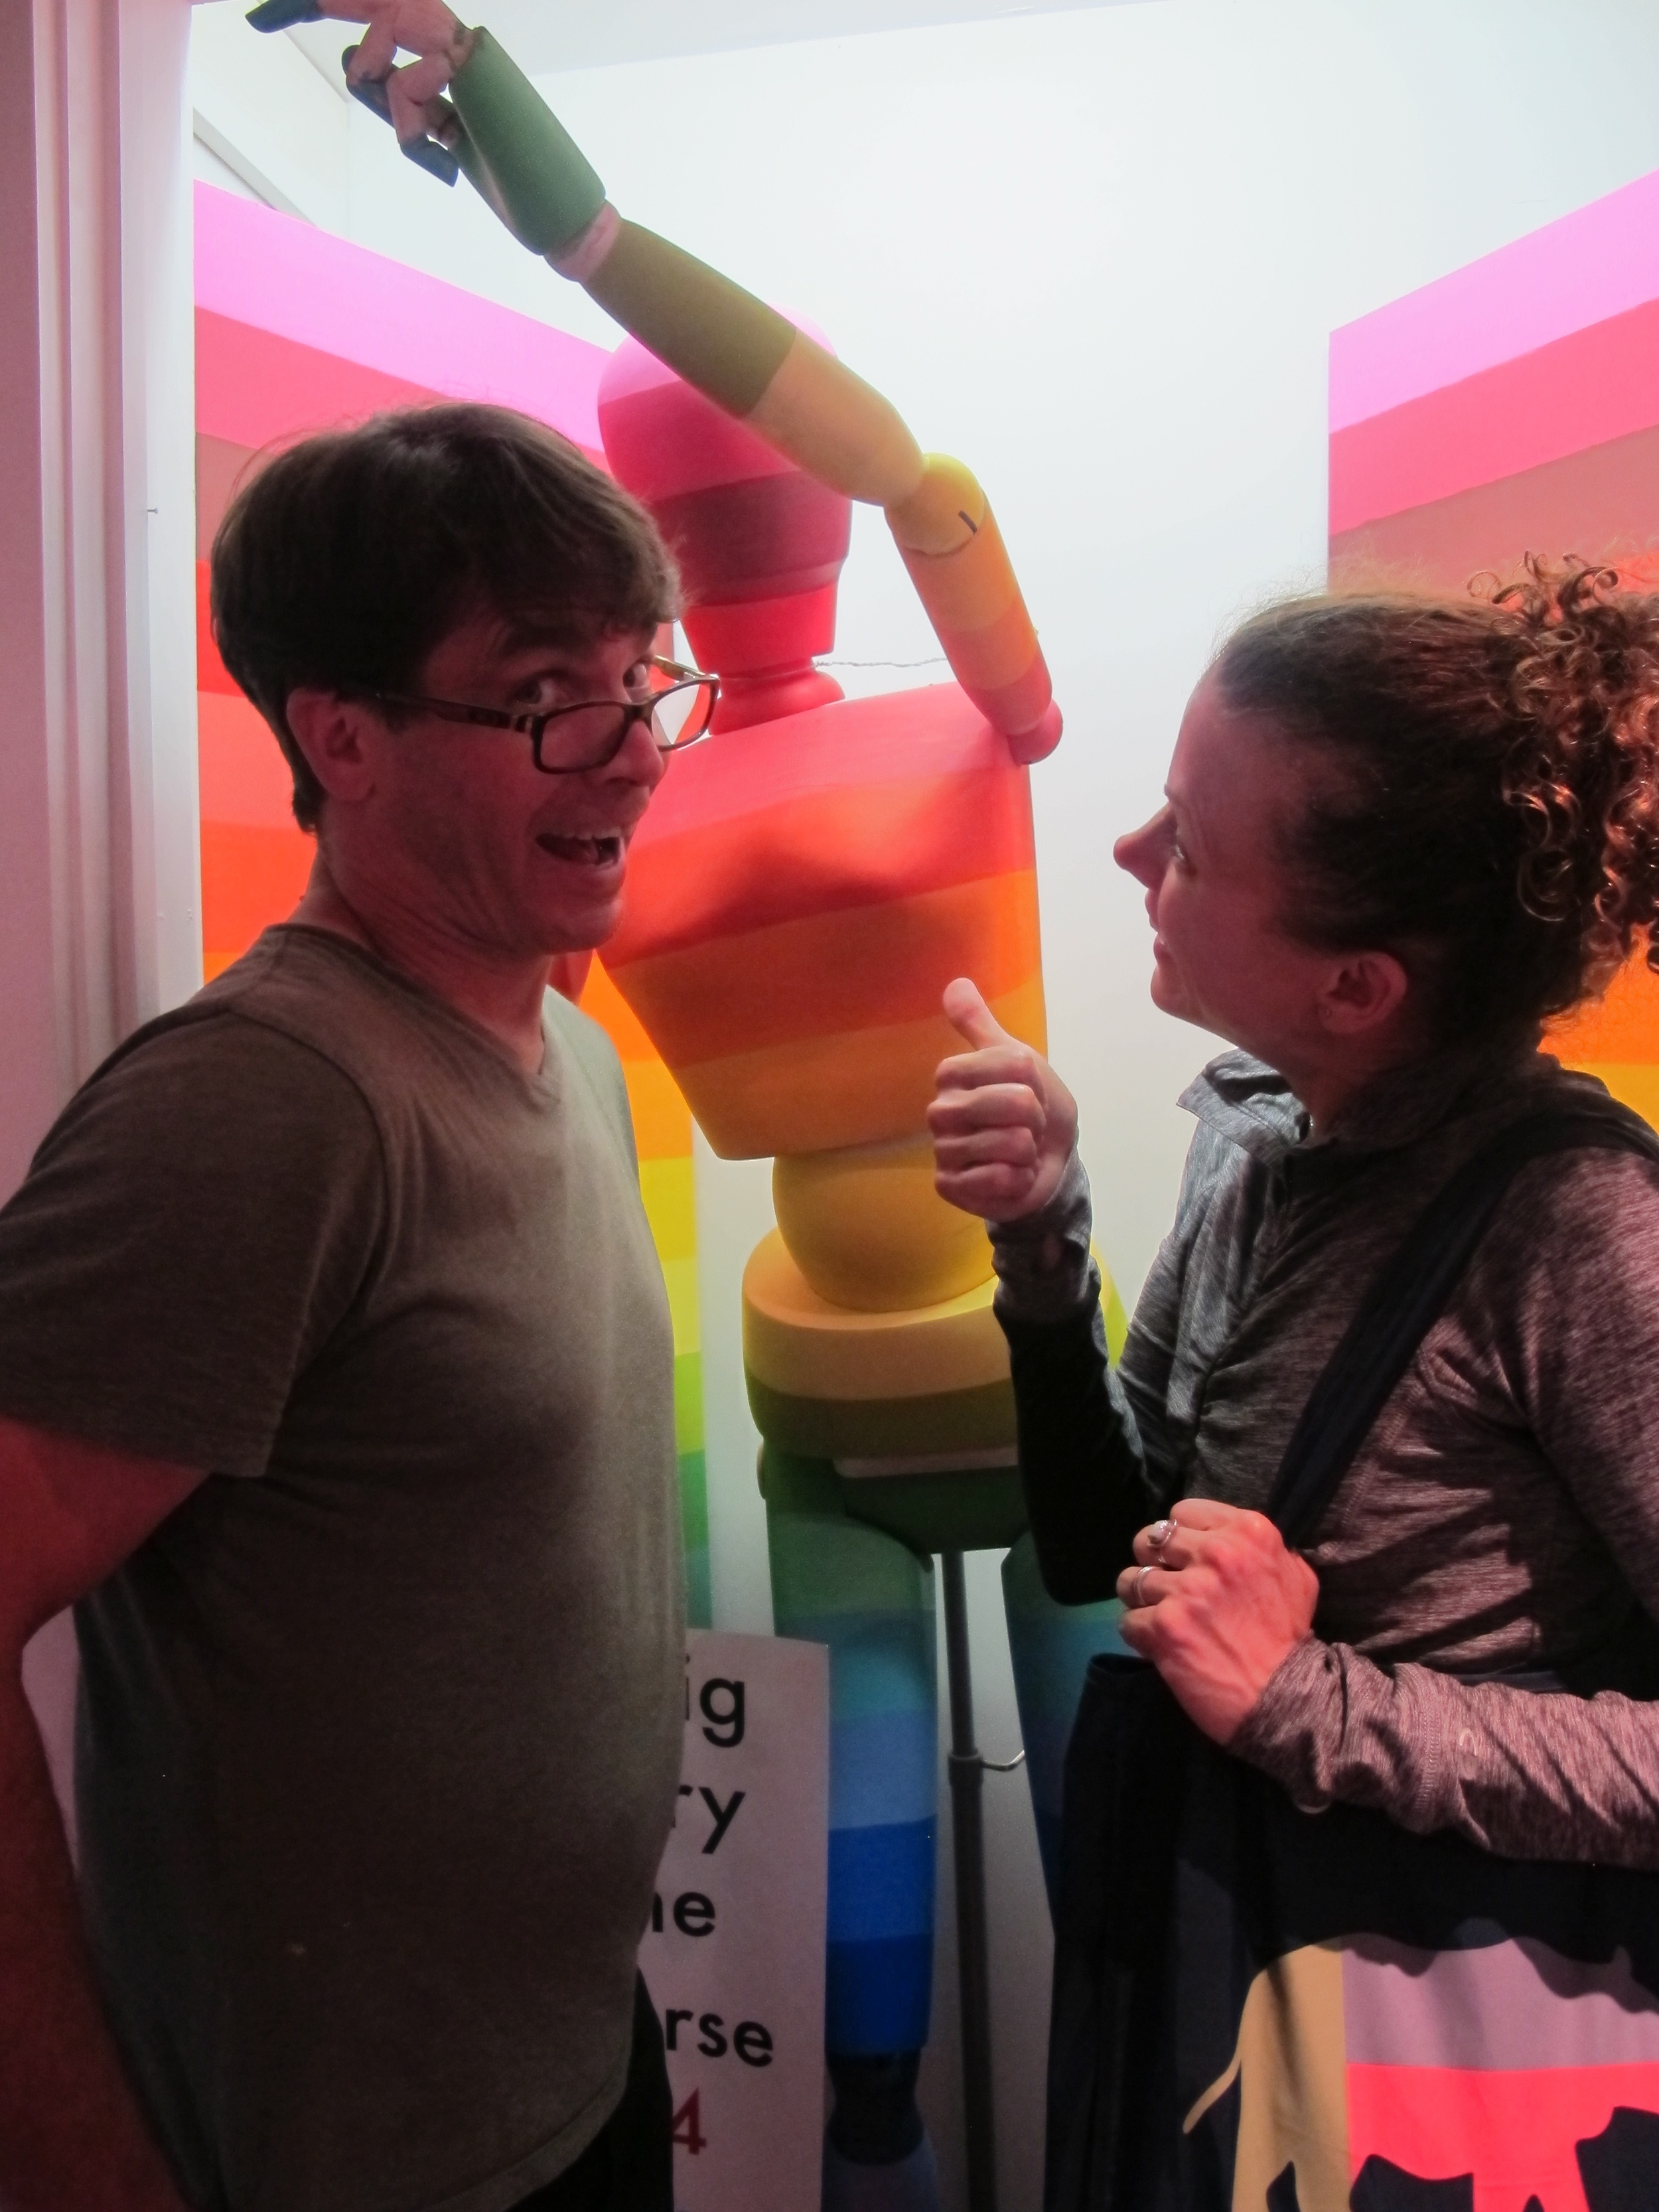 Scott and Elizabeth had fun visiting Hueman, our 13.7-billion-year, color-coded—dare I say walking and talking?—timeline of the history of the universe .